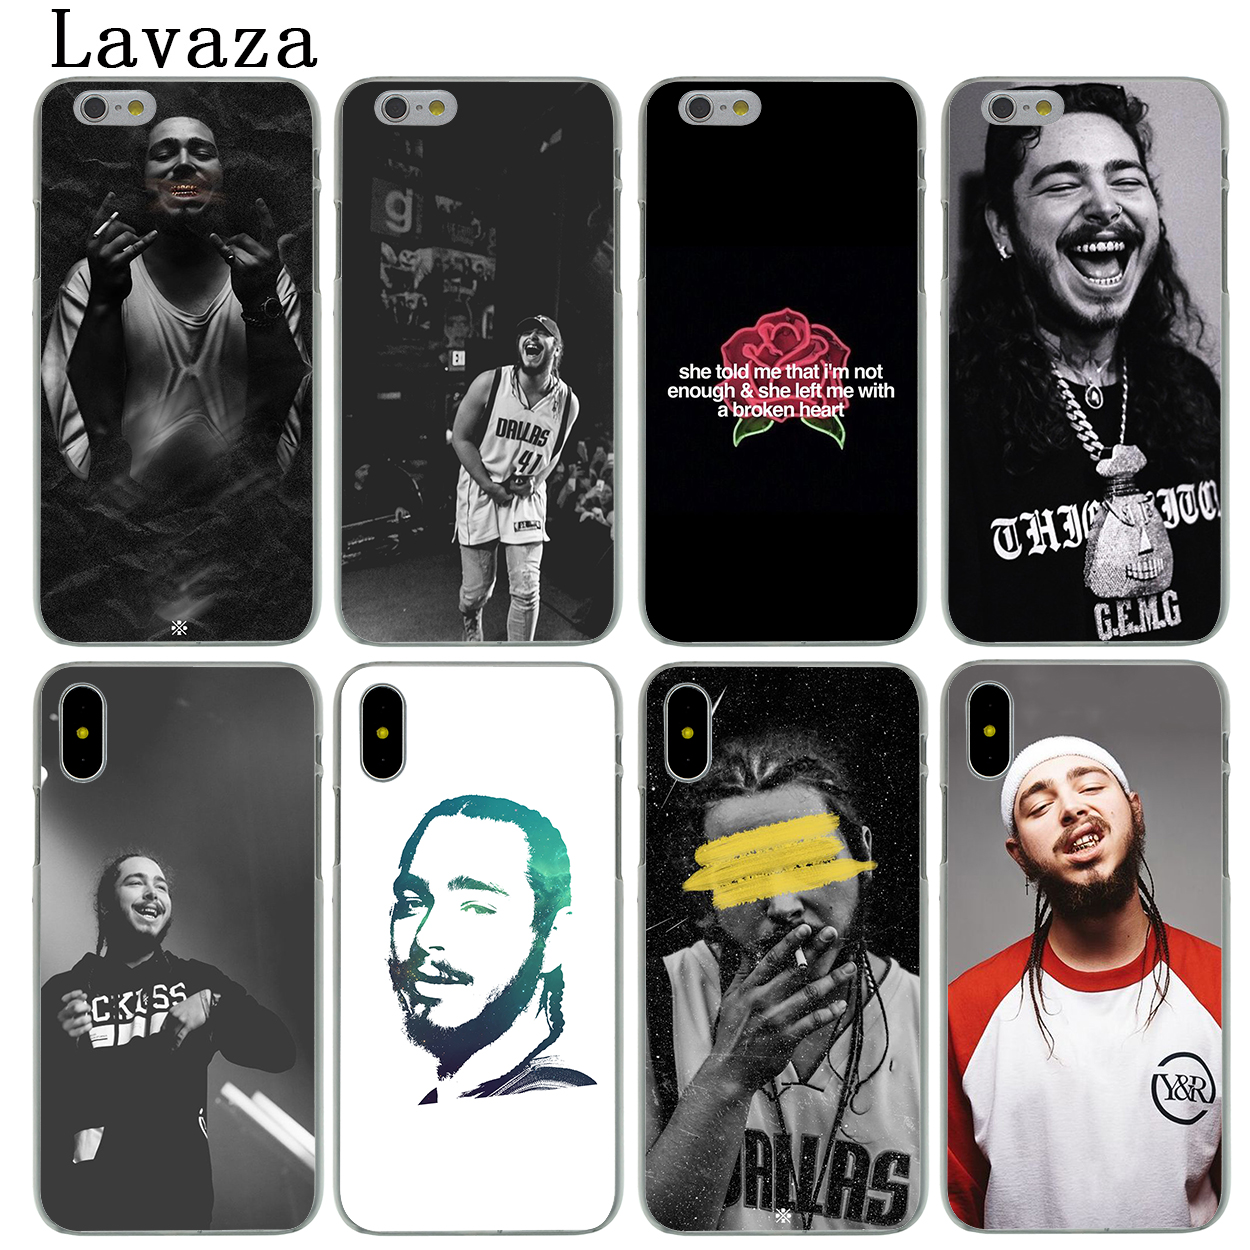 Kids' Clothes, Shoes & Accs. Clothes, Shoes & Accessories Aertemisi Phone Cases Cardi B Transparent Crystal Clear Soft Tpu Case Cover For Iphone 5 5s Se 6 6s 7 8 Plus X Discounts Price